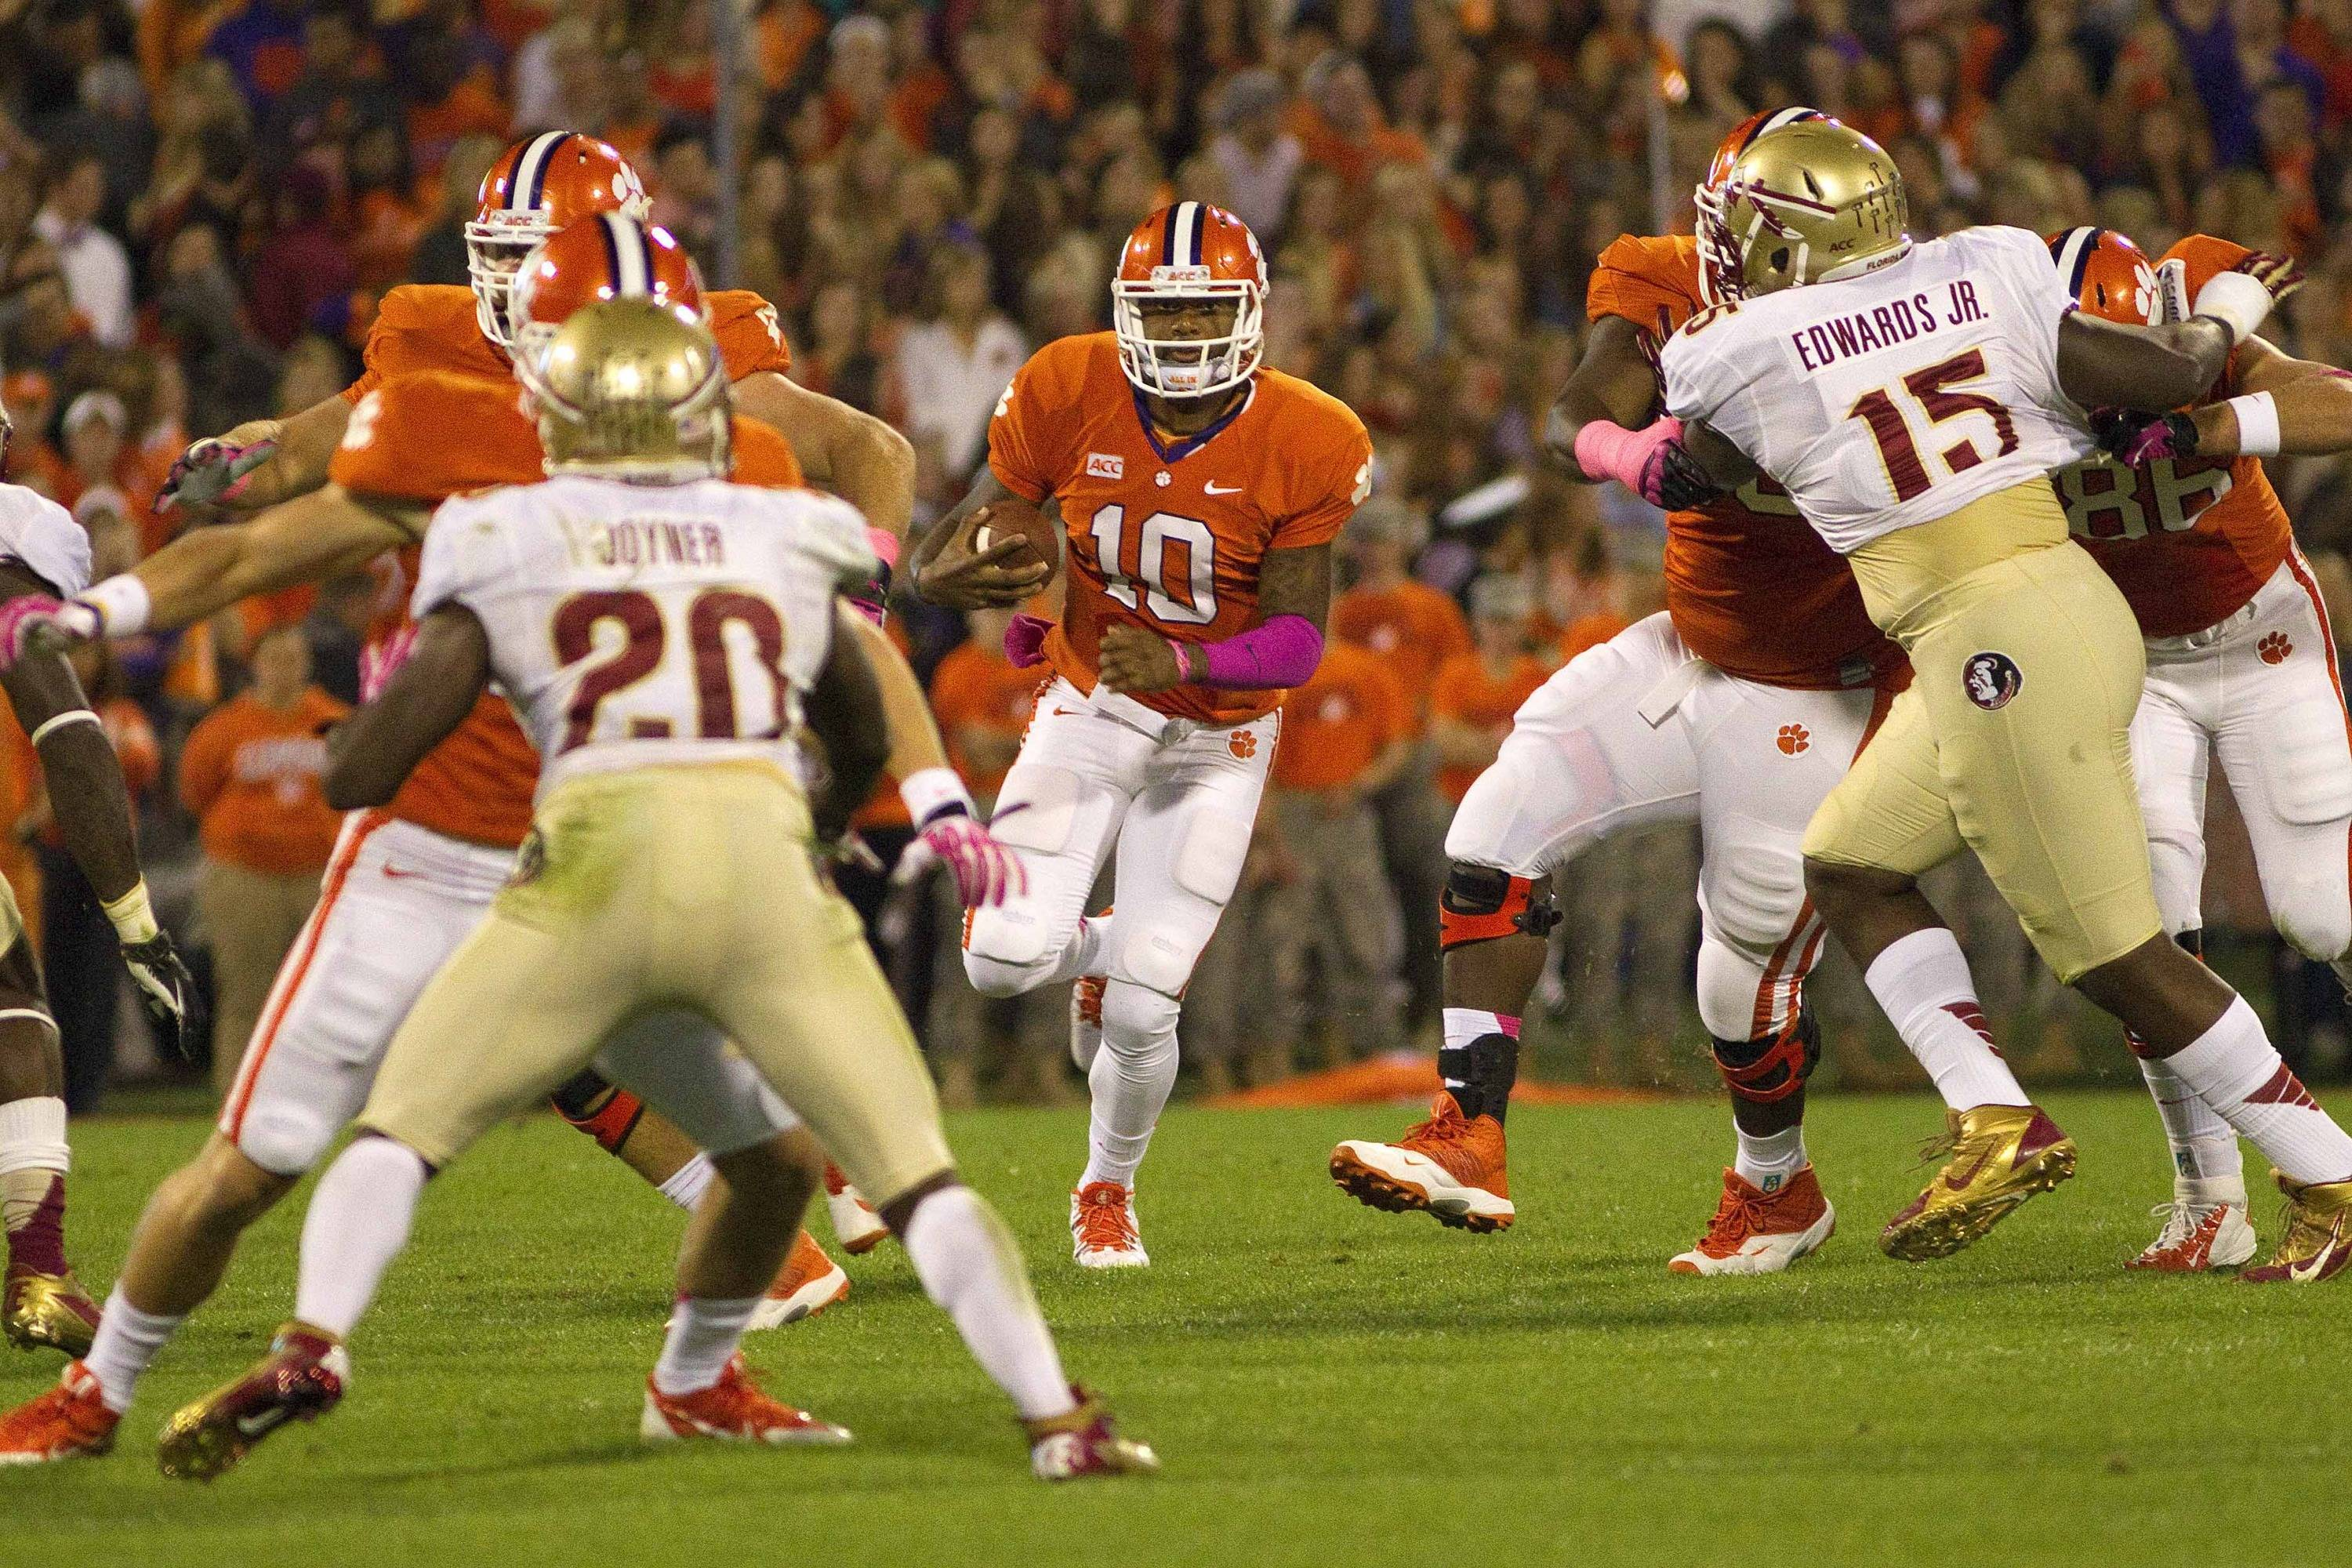 Clemson Tigers quarterback Tajh Boyd (10) on a quarterback keeper during the first quarter against the Florida State Seminoles at Clemson Memorial Stadium. (Joshua S. Kelly-USA TODAY Sports)